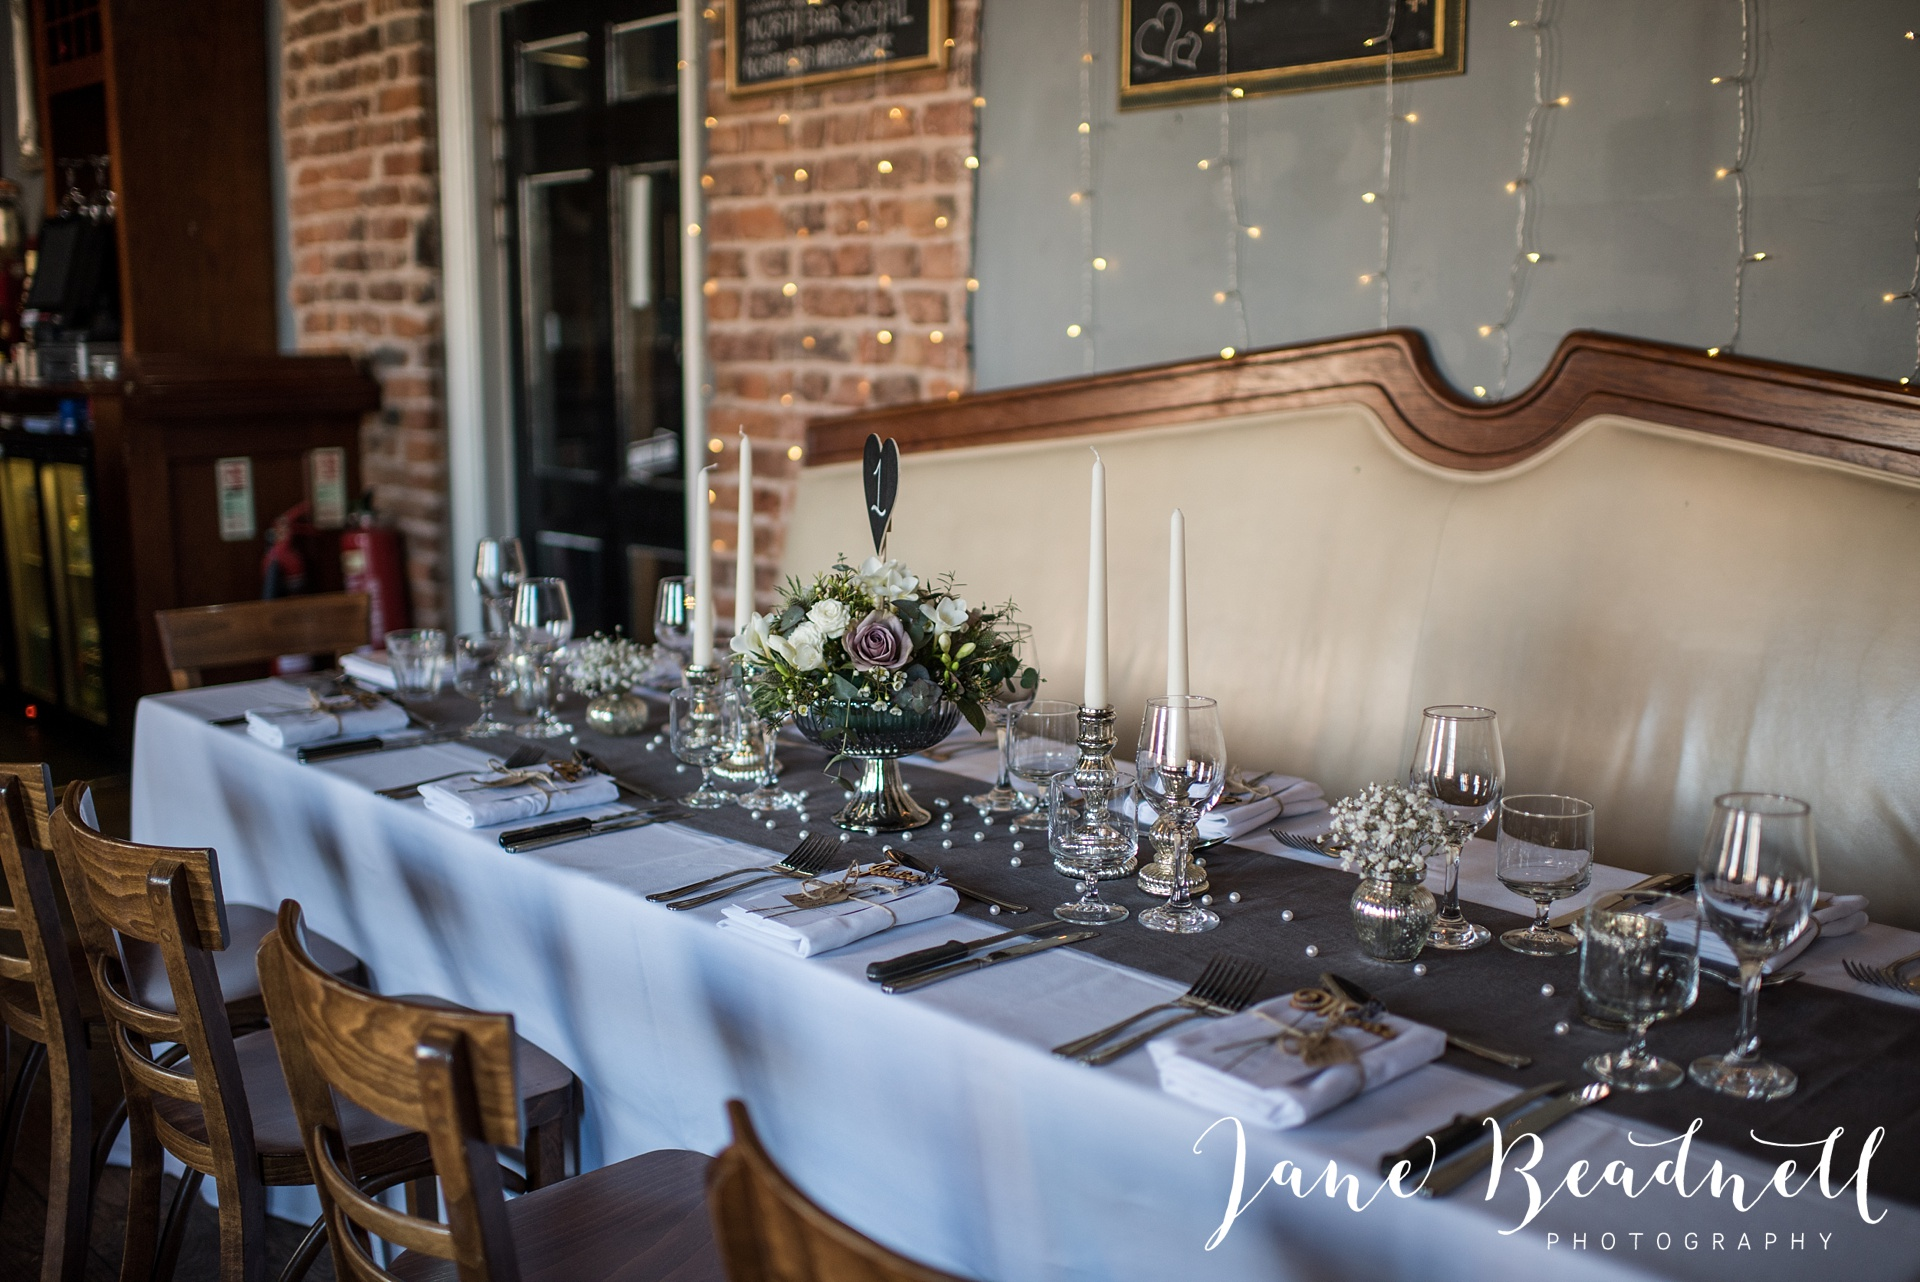 Wedding photography Cross Keys Leeds Wedding Jane Beadnell Photography_0073